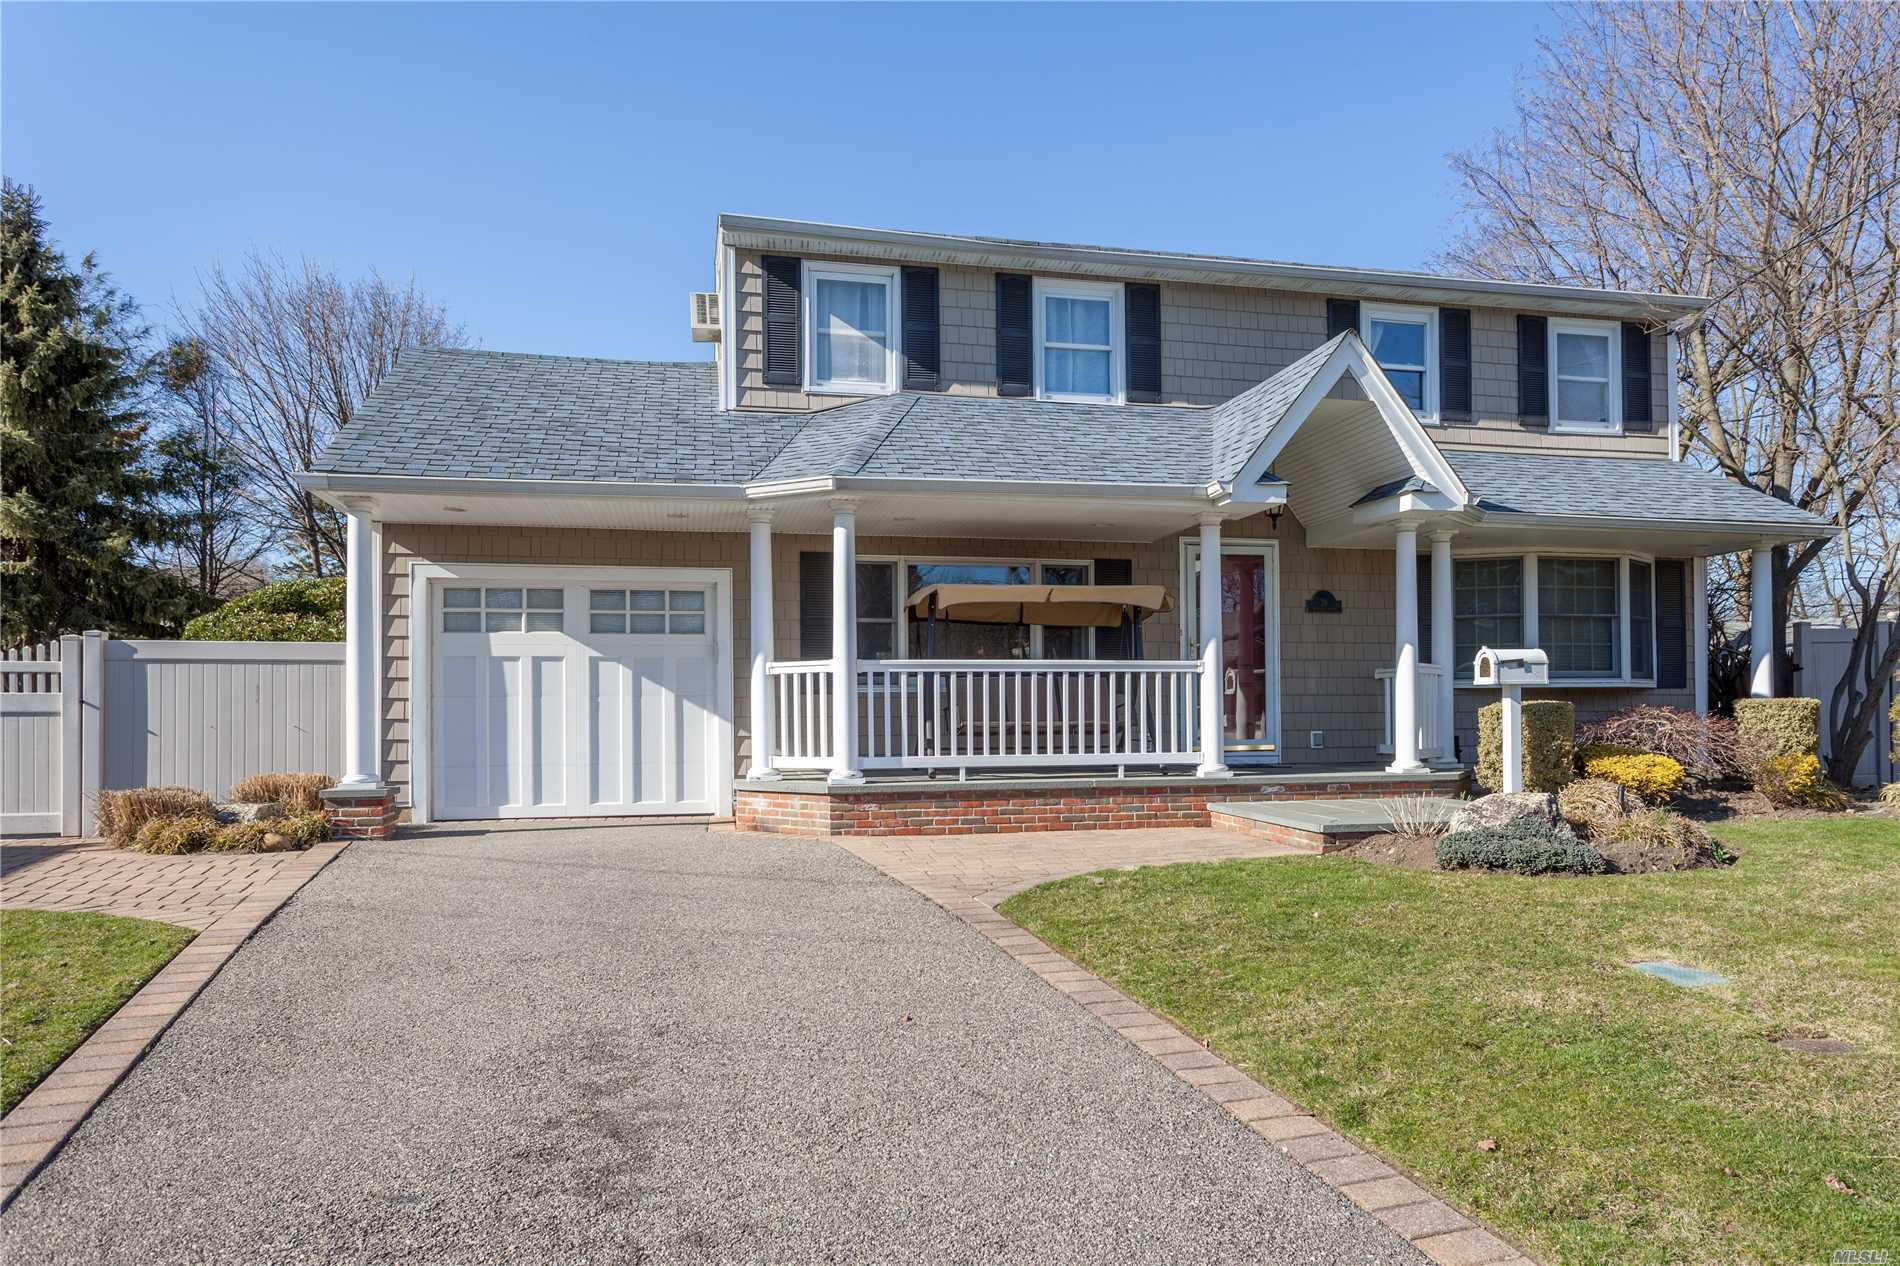 Diamond Condition - 6 Bedrooms With 1 Additional Bonus Room. Beautiful Backyard With Water Fall & Basketball Court - Large Family Room - Big Rooms - Full Basement - Low Taxes - Syosset Schools